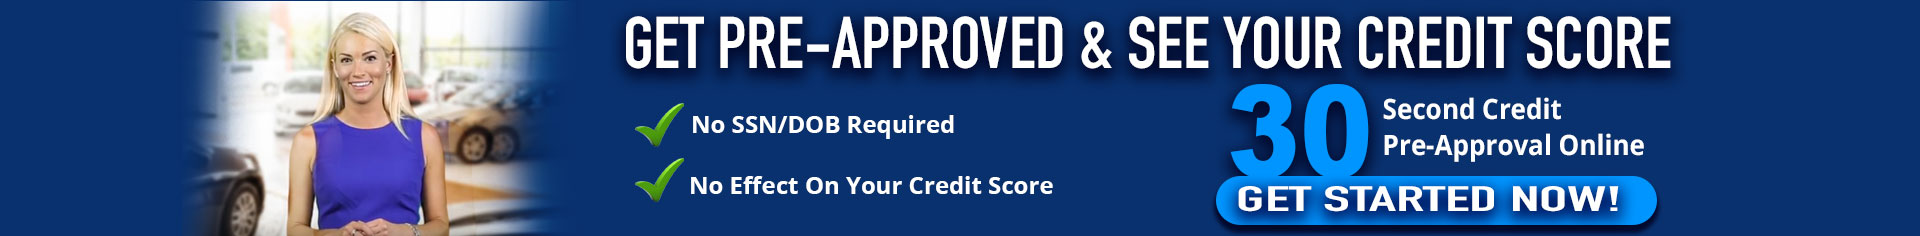 Get Pre-Approved for Buy Here Pay Here used cars in Philadelphia.